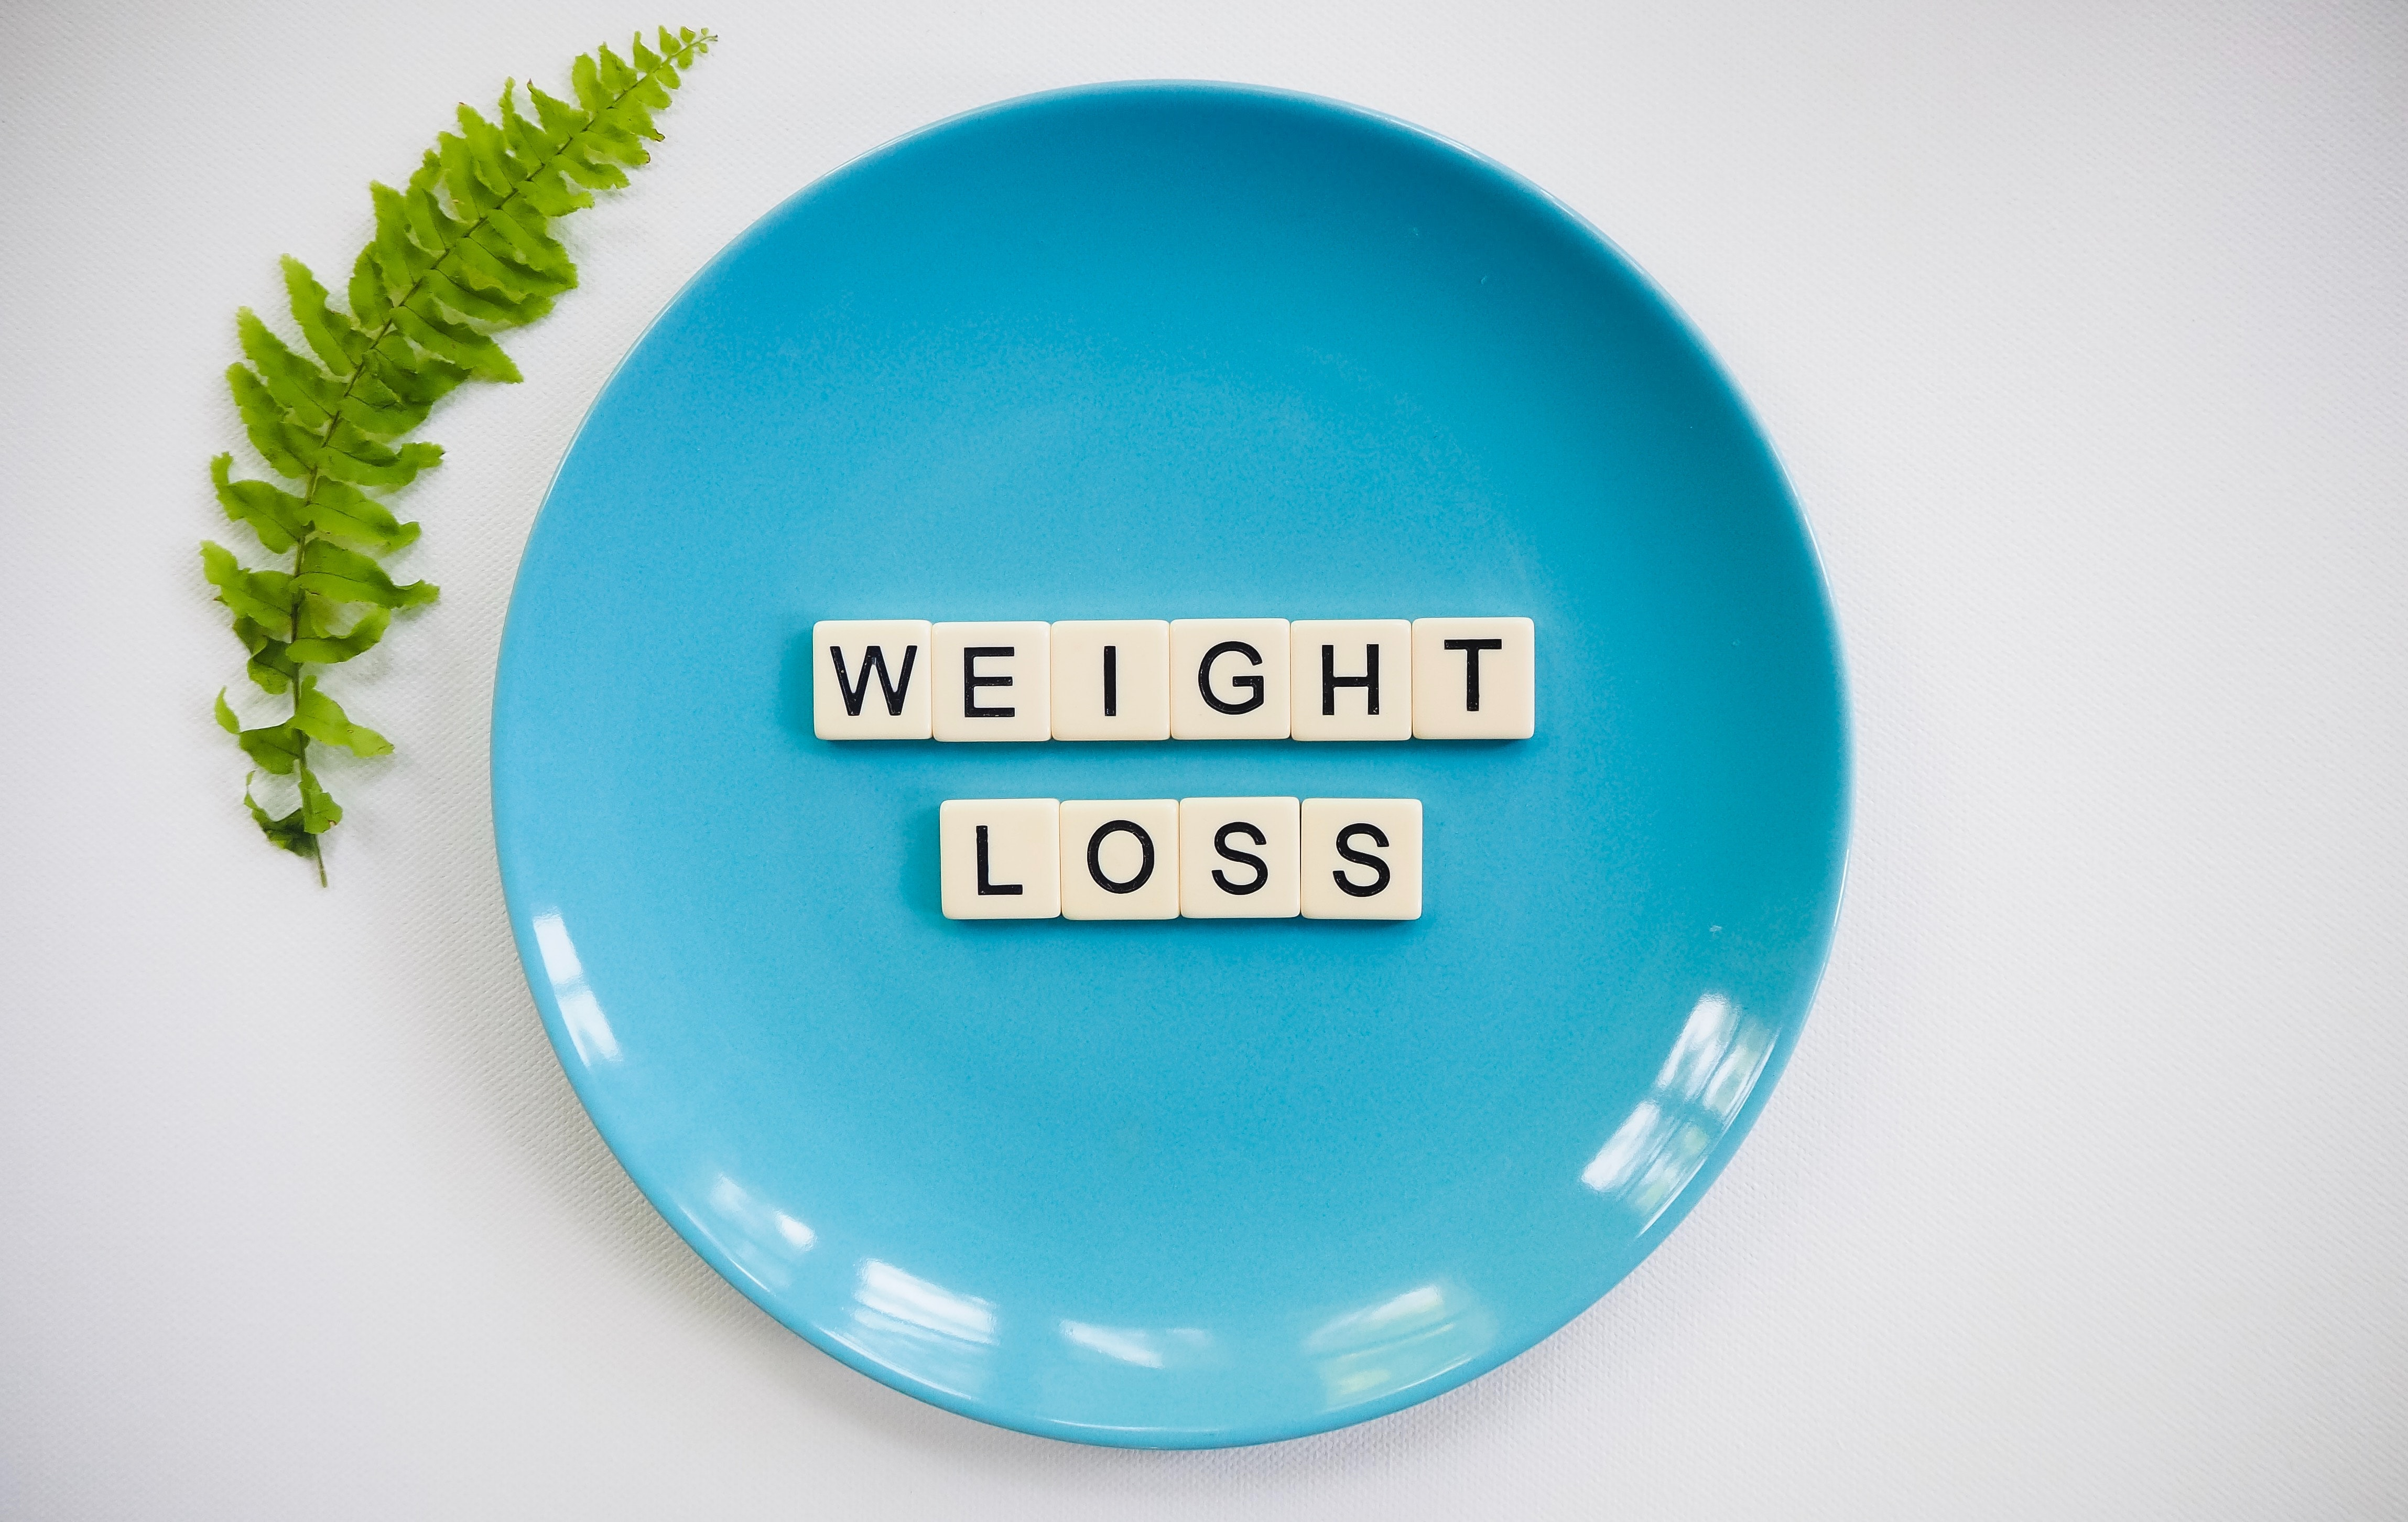 what is the best sport to lose weight 2021?